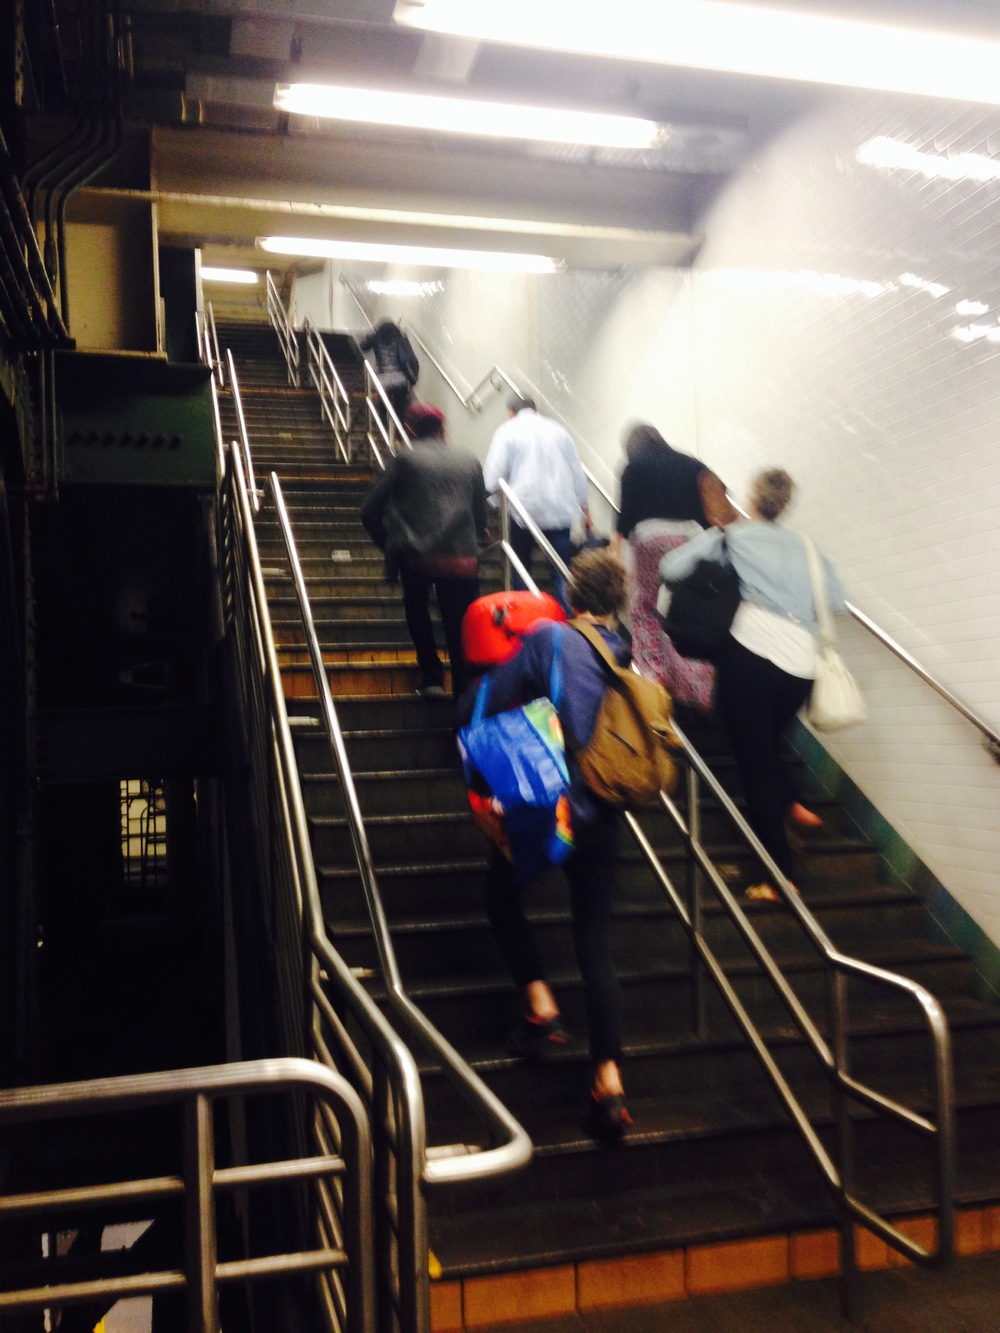 A precarious climb up the subway steps, bags in hand.